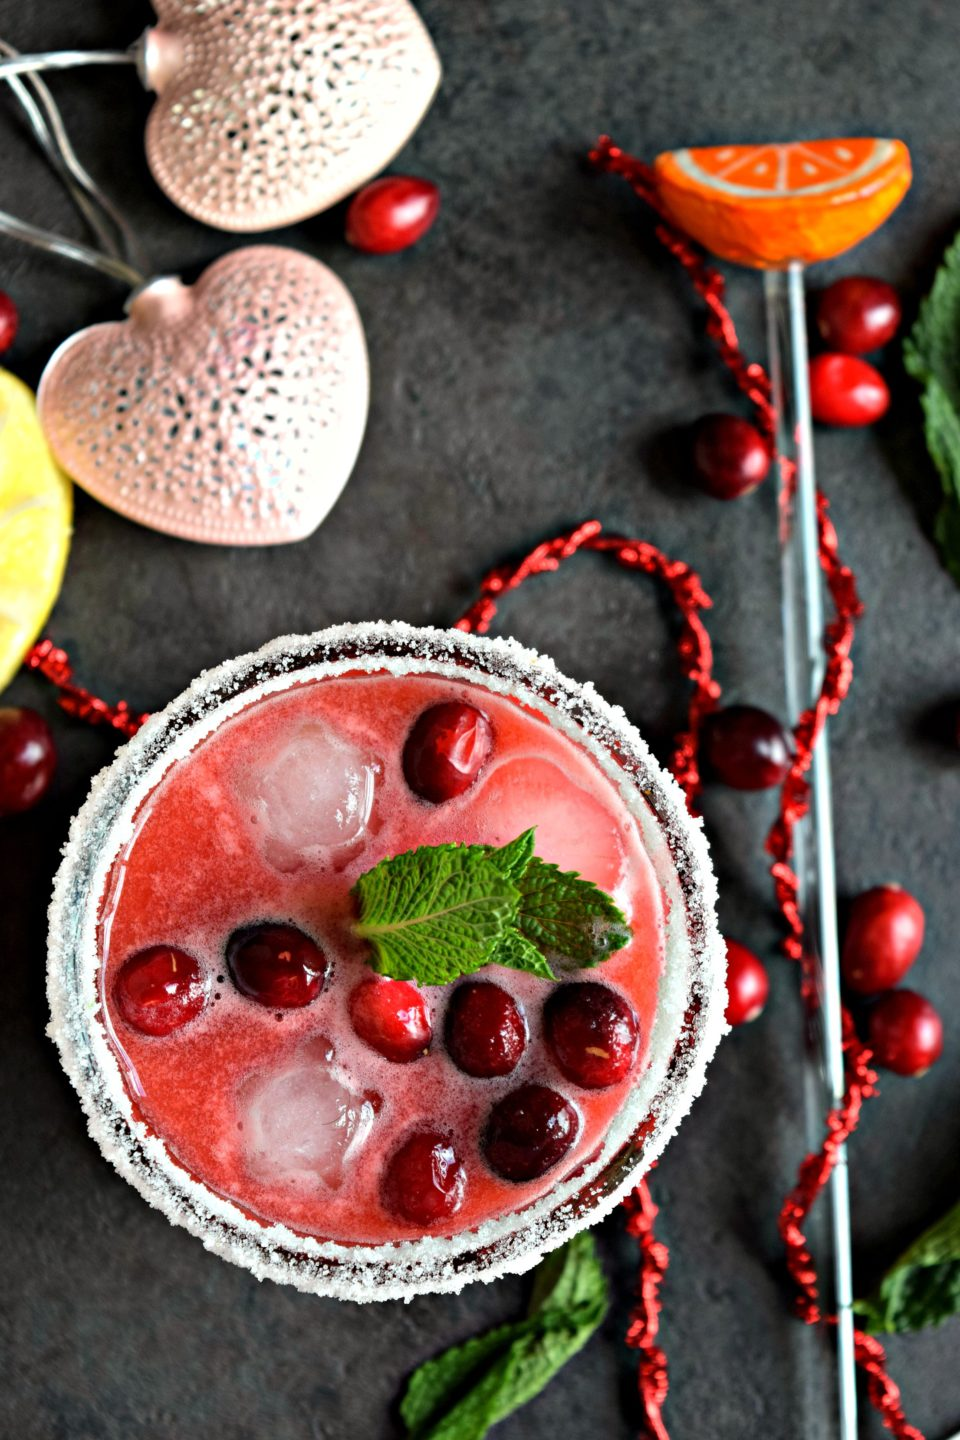 Amortentia - Harry Potter Love Potion Punch - Valentine's Day SpecialDrinks